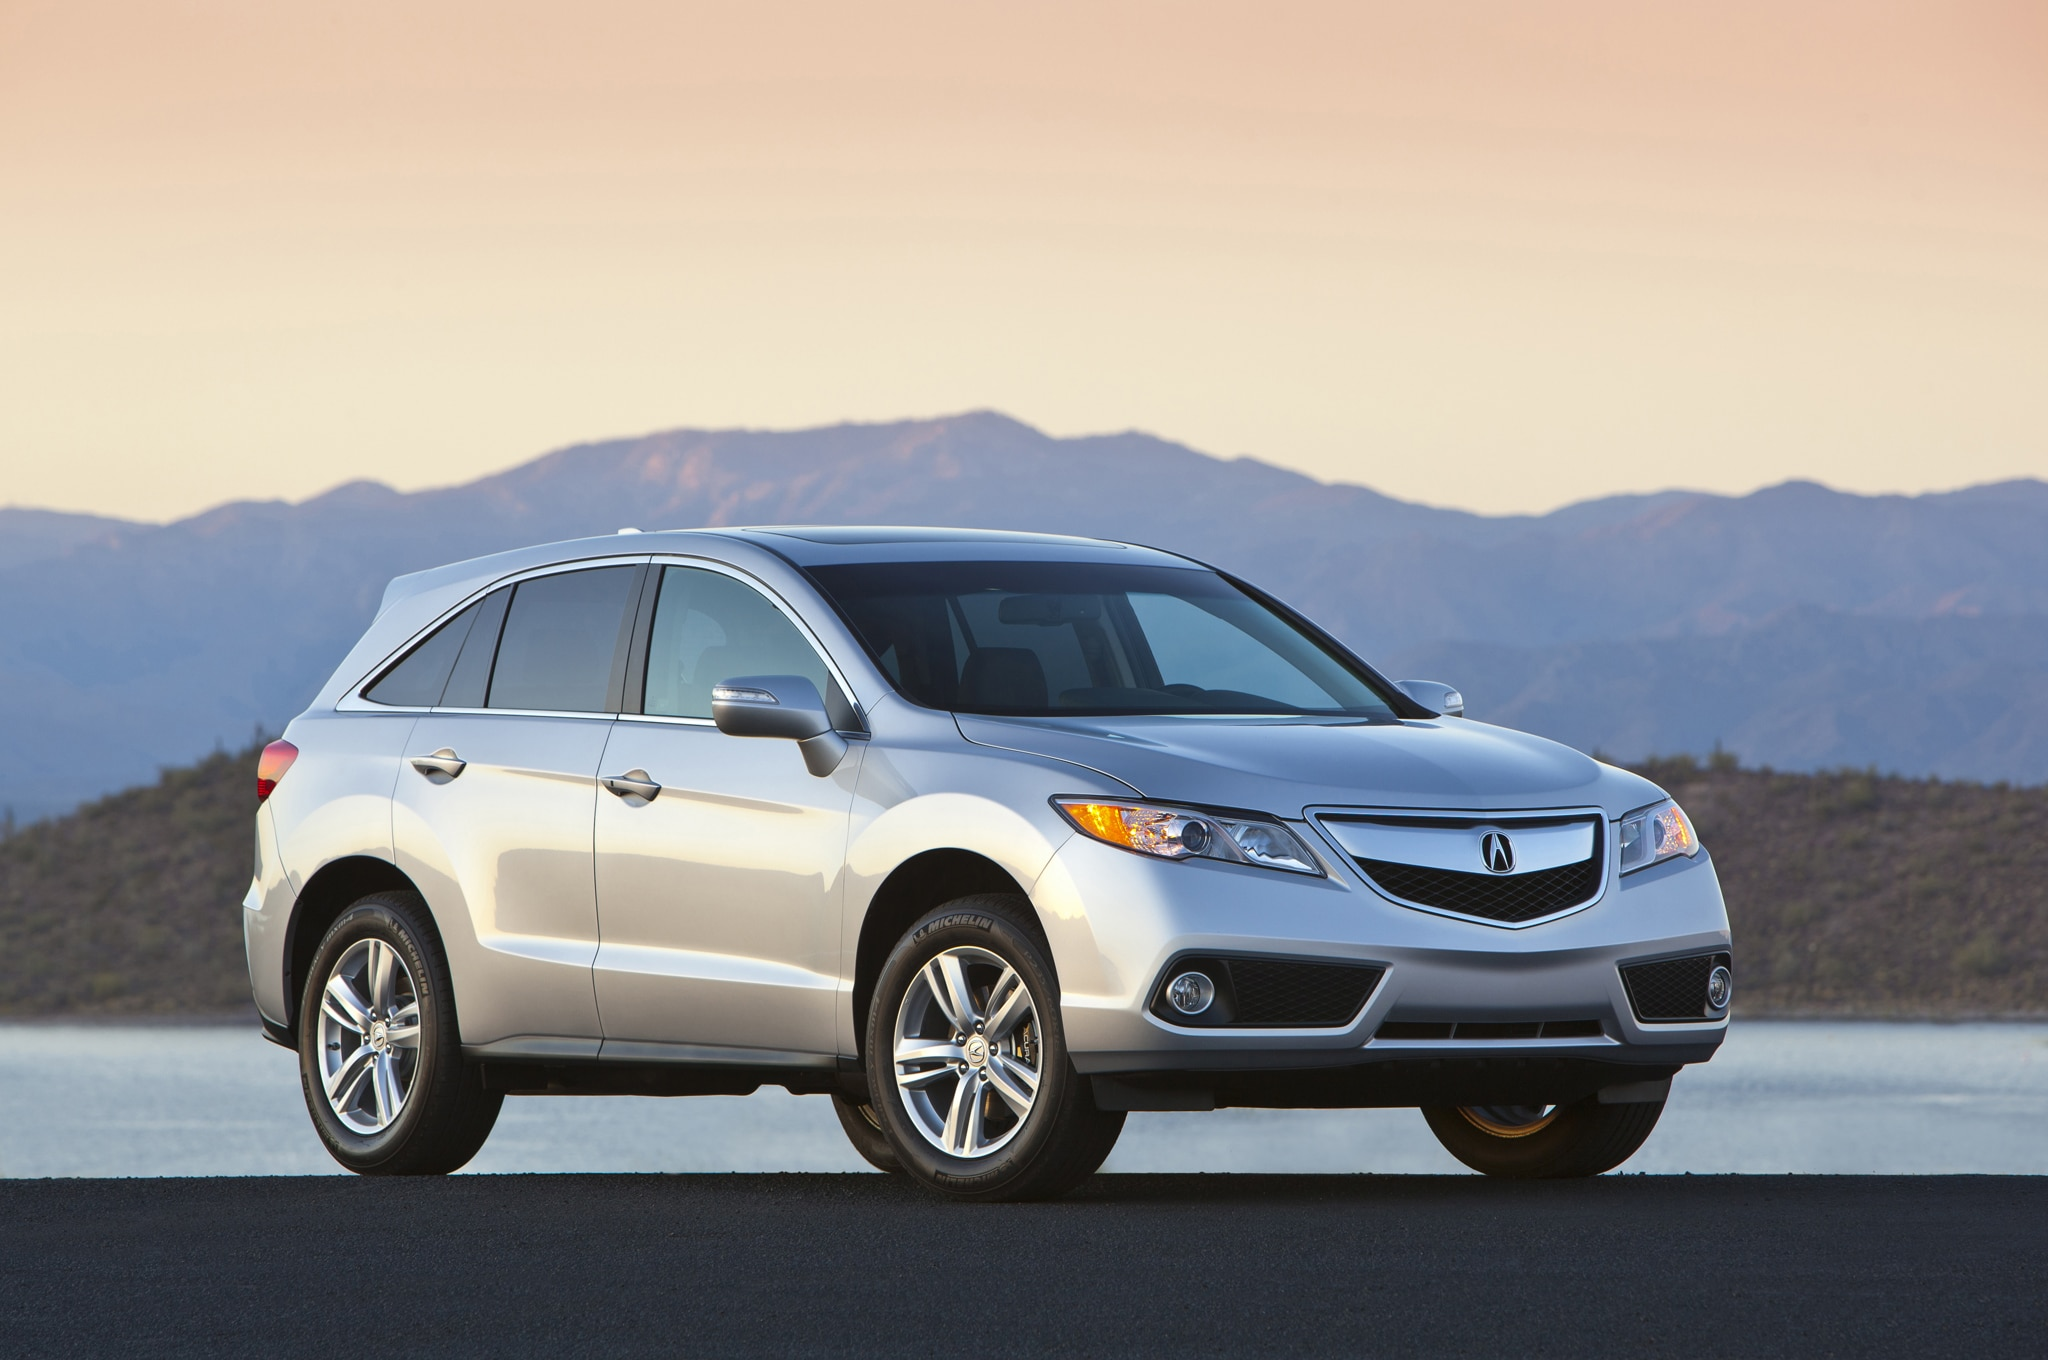 2015 Acura RDX Priced From $35,790